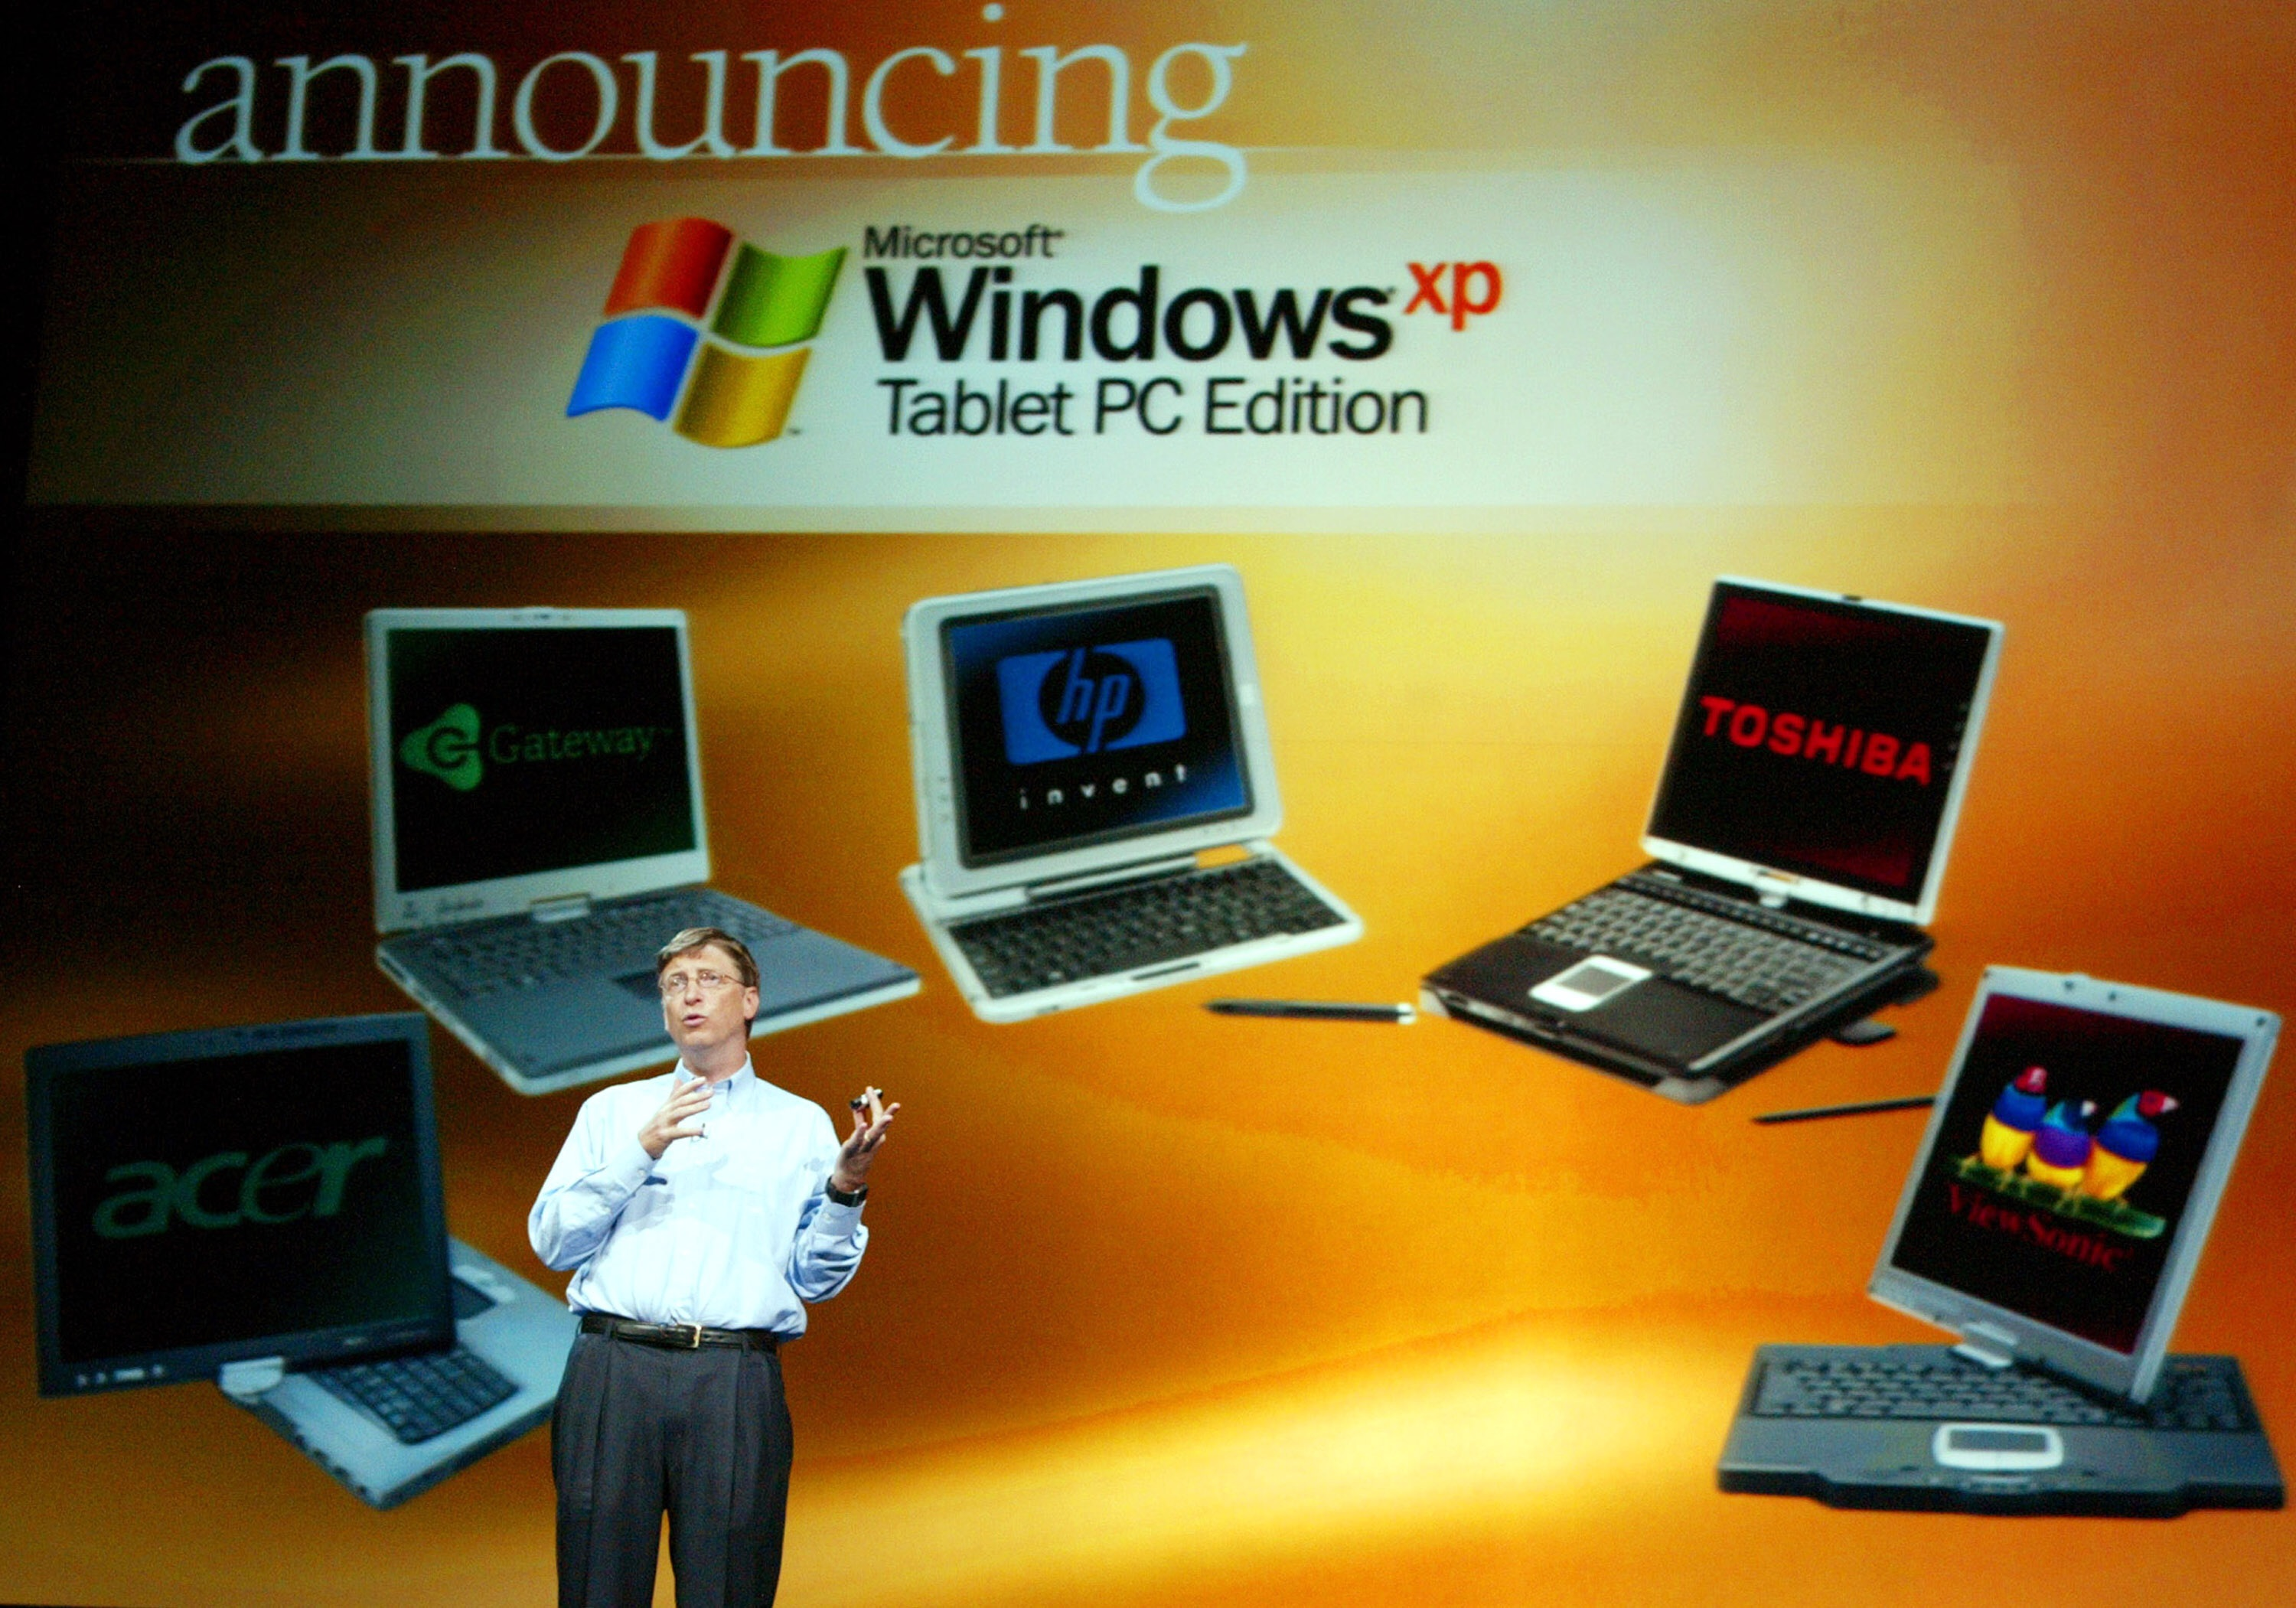 Bill Gates shows off Tablet PCs at COMDEX in Las Vegas on November 16, 2003